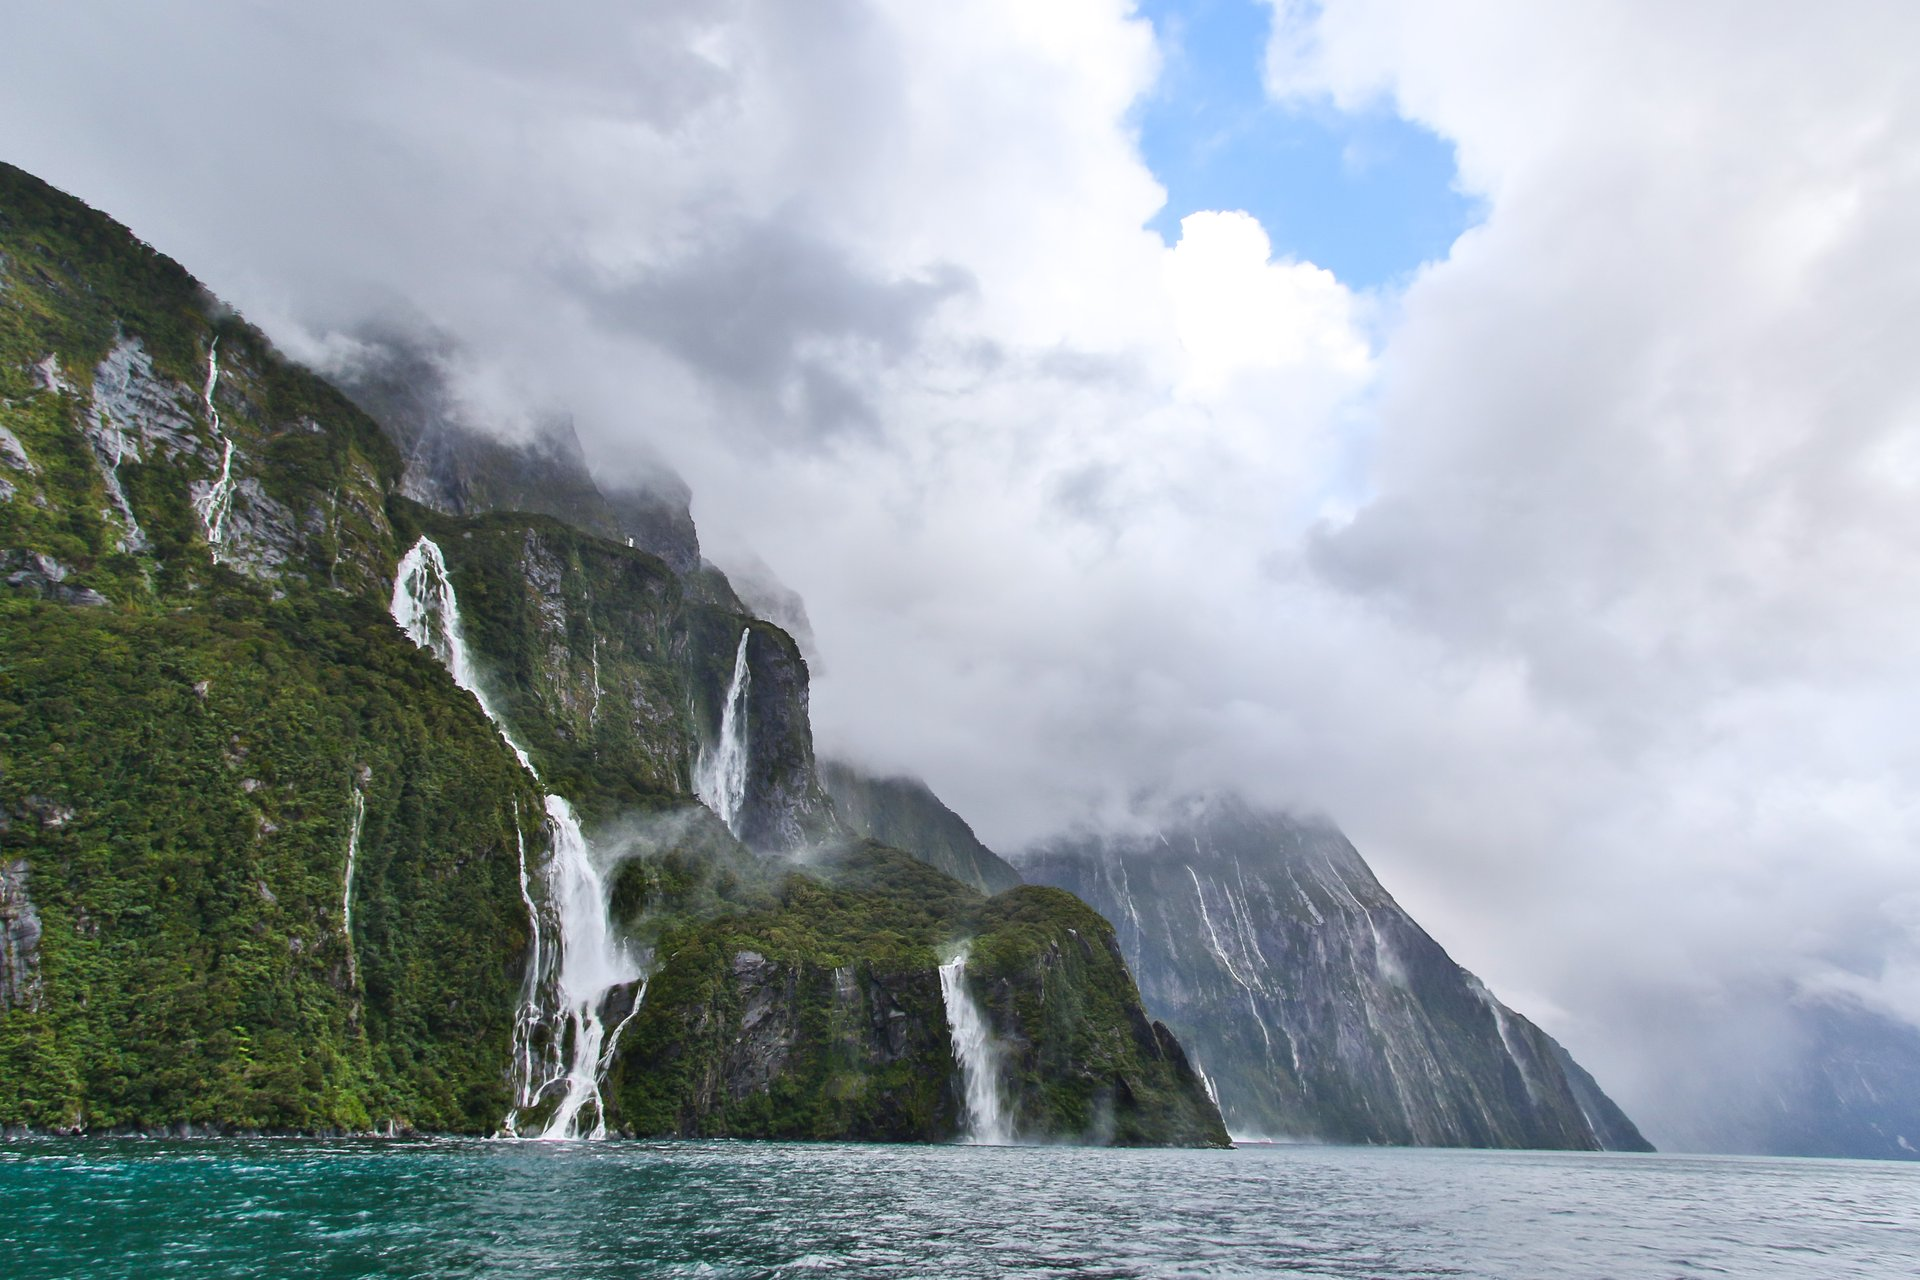 Milford Sound in New Zealand 2020 - Best Time